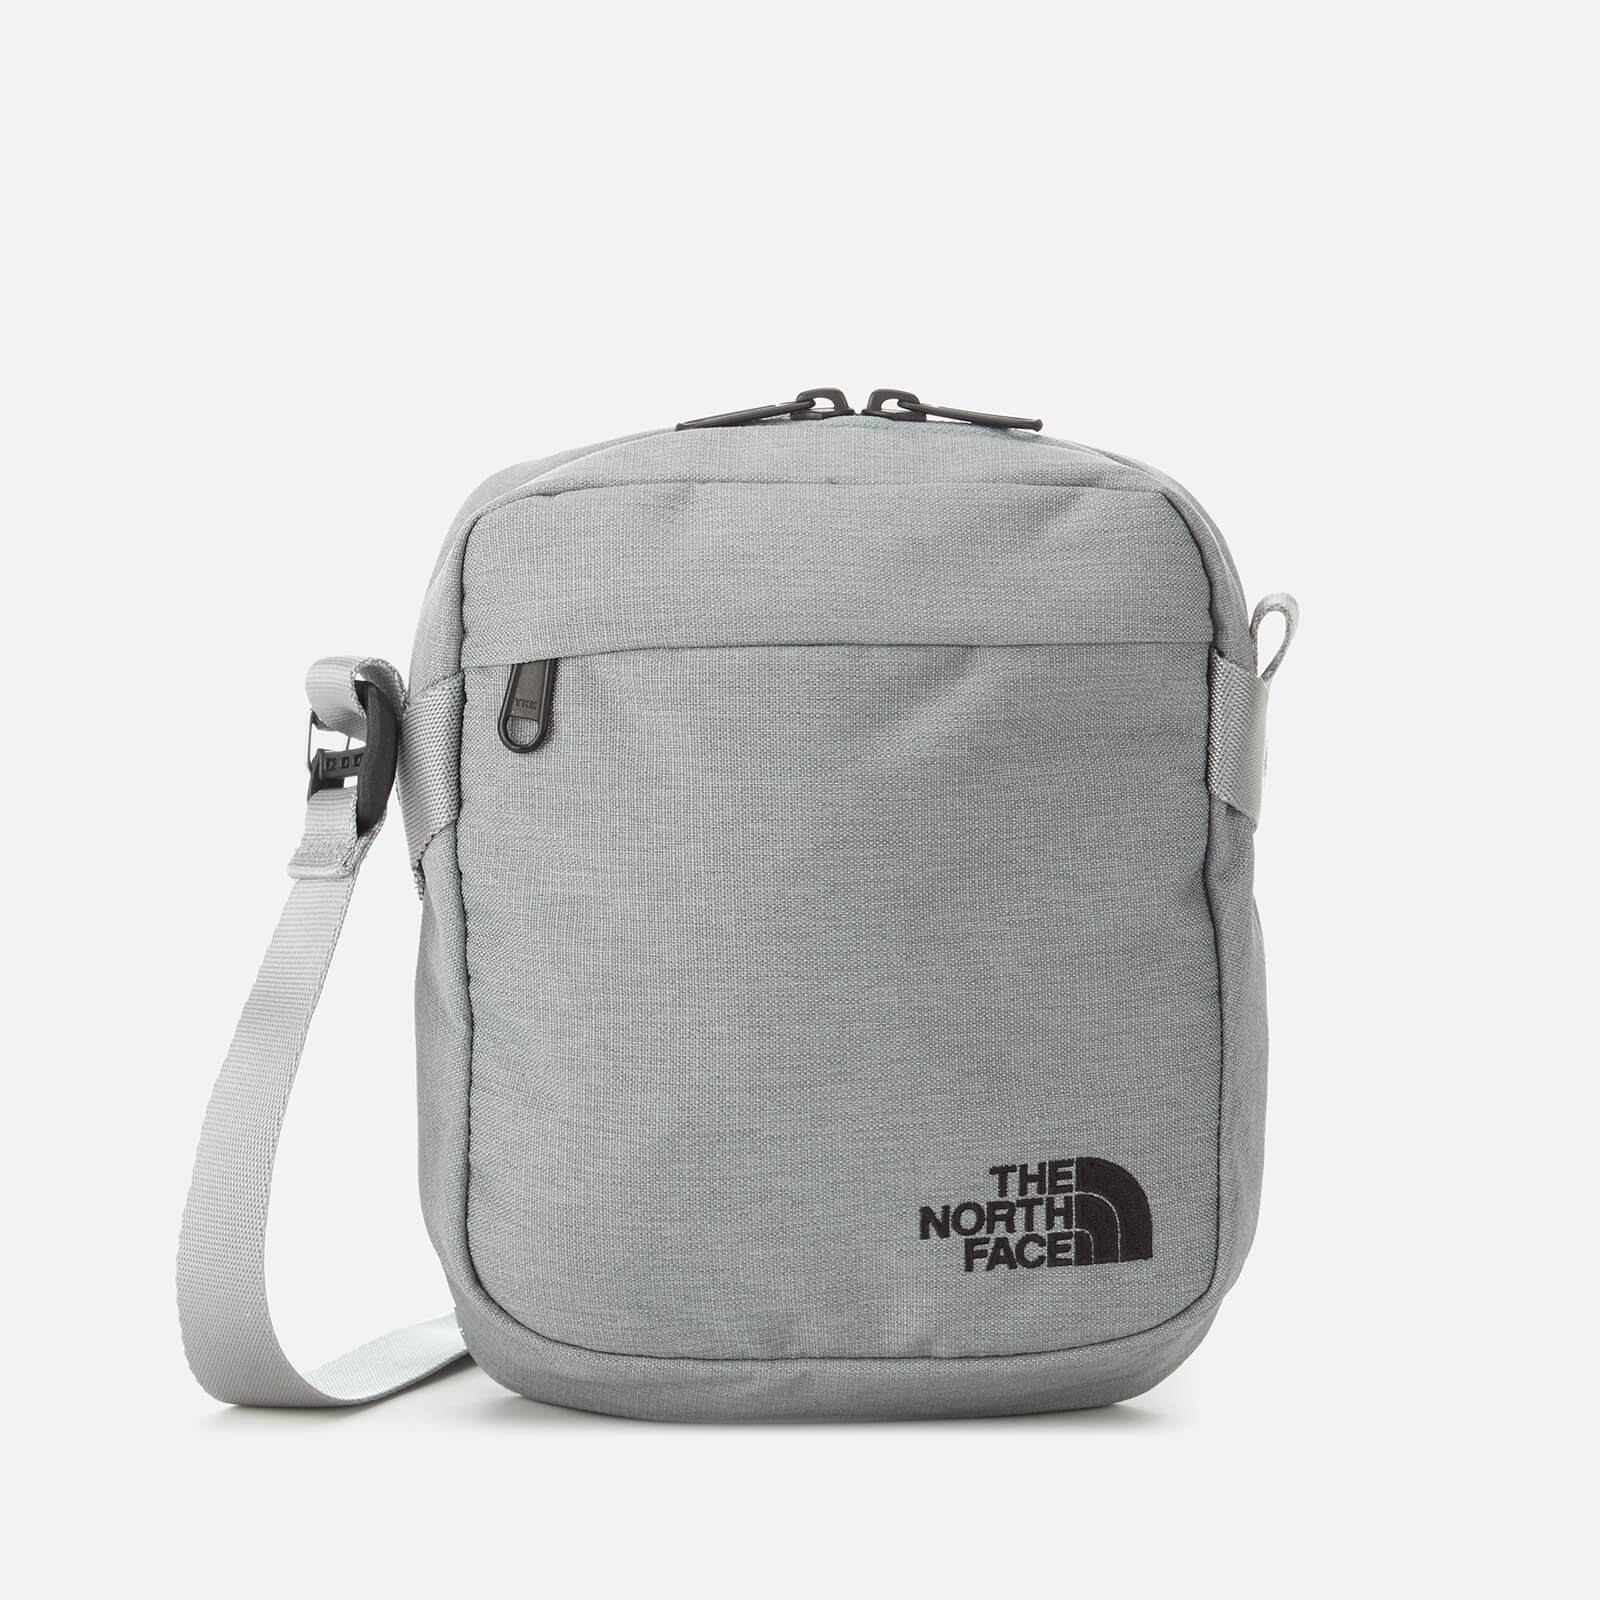 0eeeac6bb41279 The North Face Convertible Shoulder Bag - Mid Grey Dark Heather Womens  Accessories